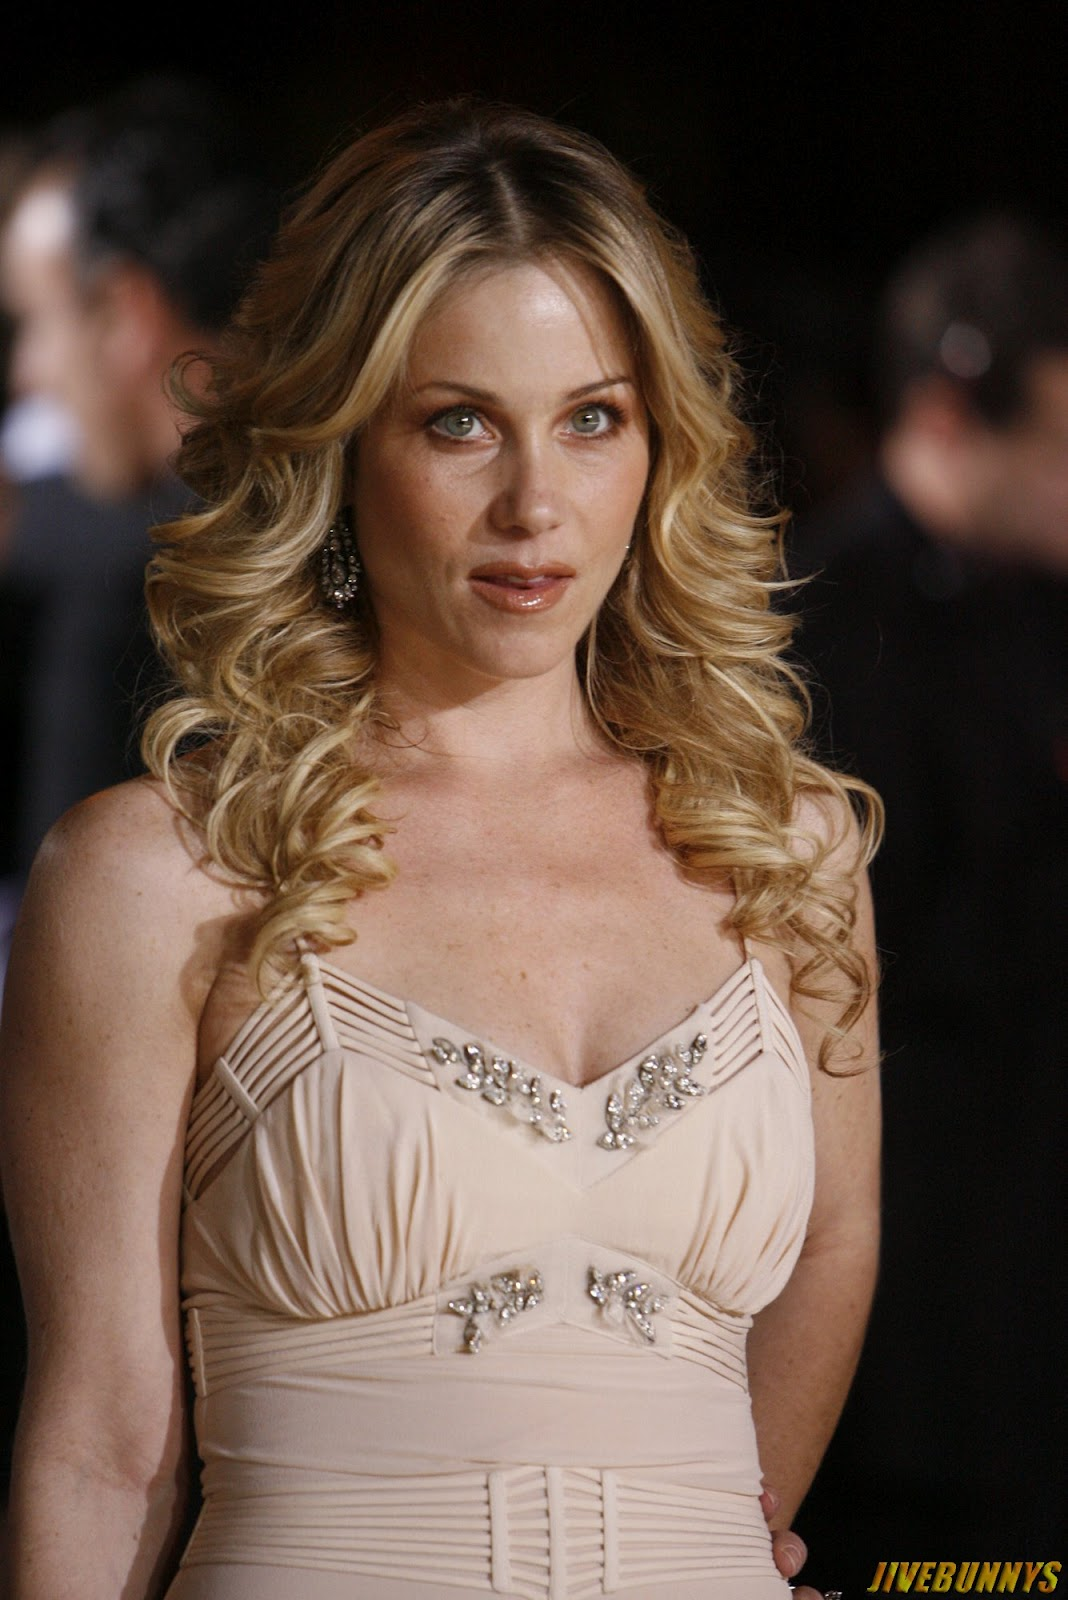 Christina Applegate Blonde Actress Pictures and Image ...